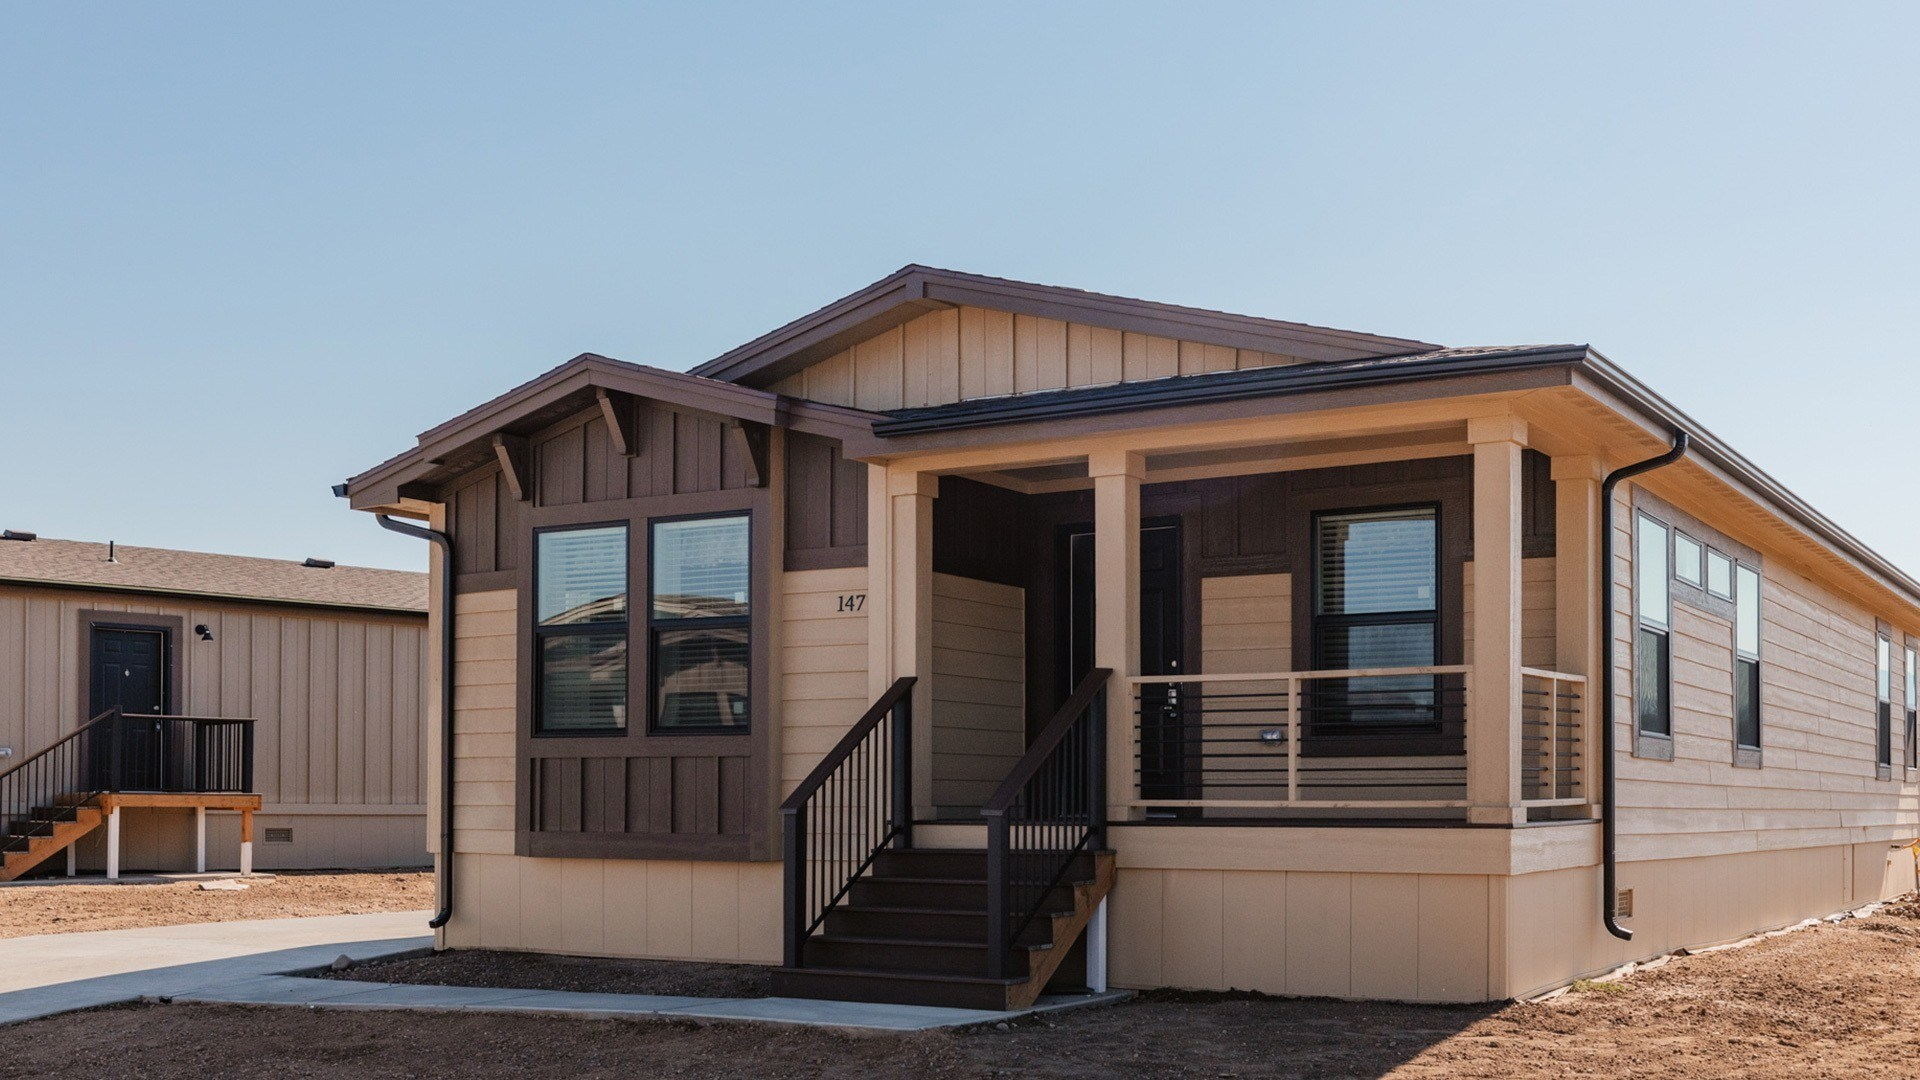 Smith Creek Crossing Manufactured Homes Community